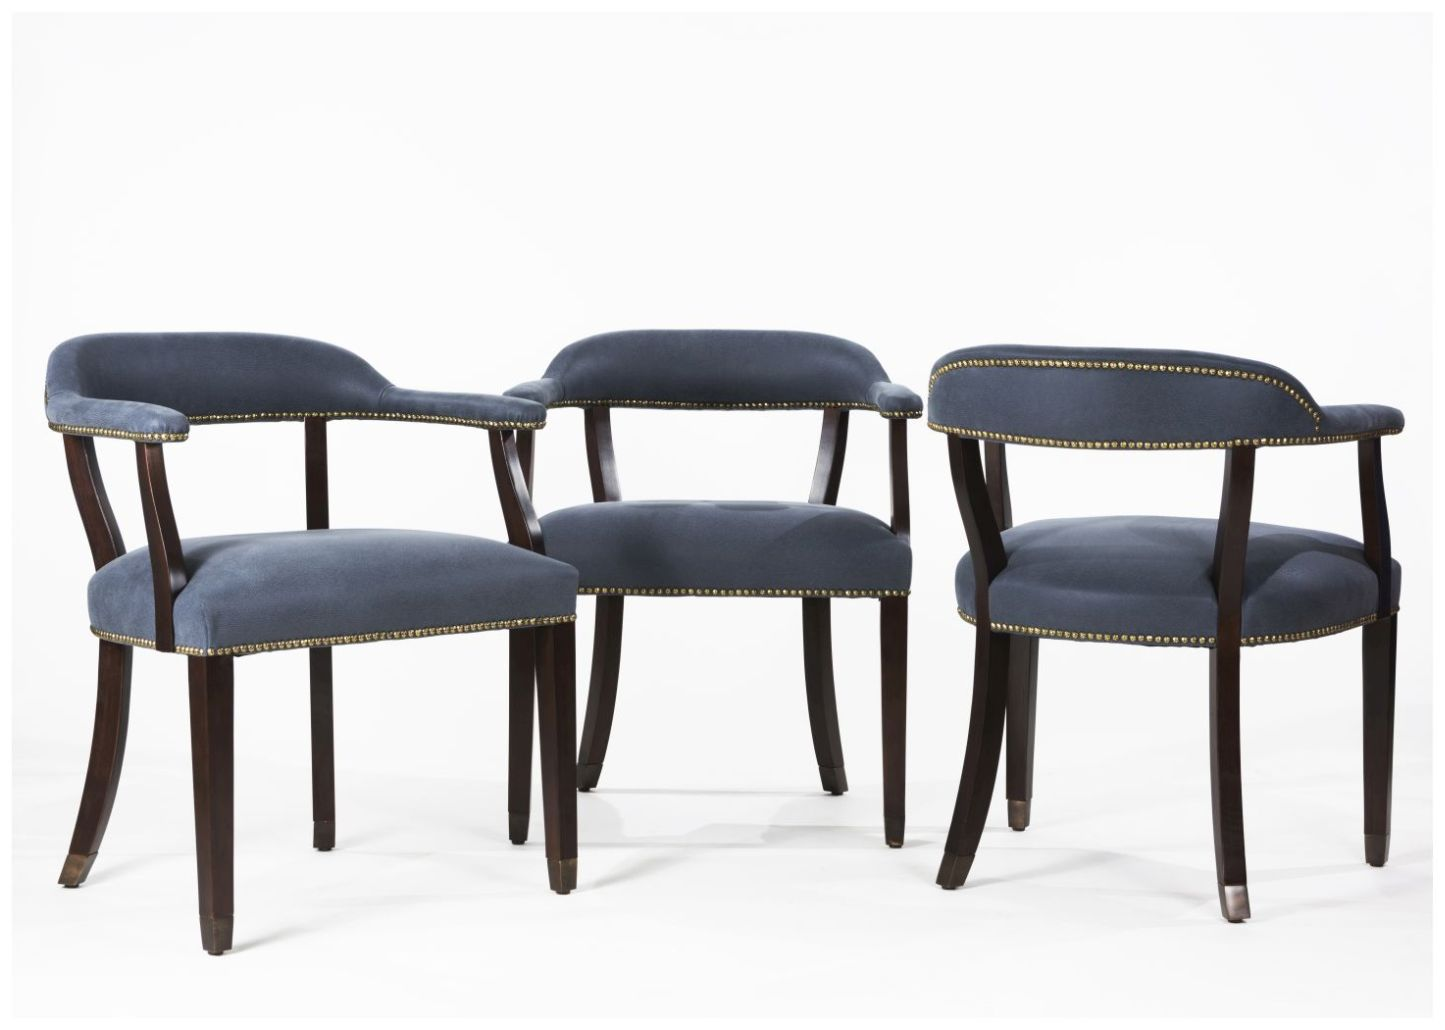 Custom Restaurant Arm Chairs with Curved Back